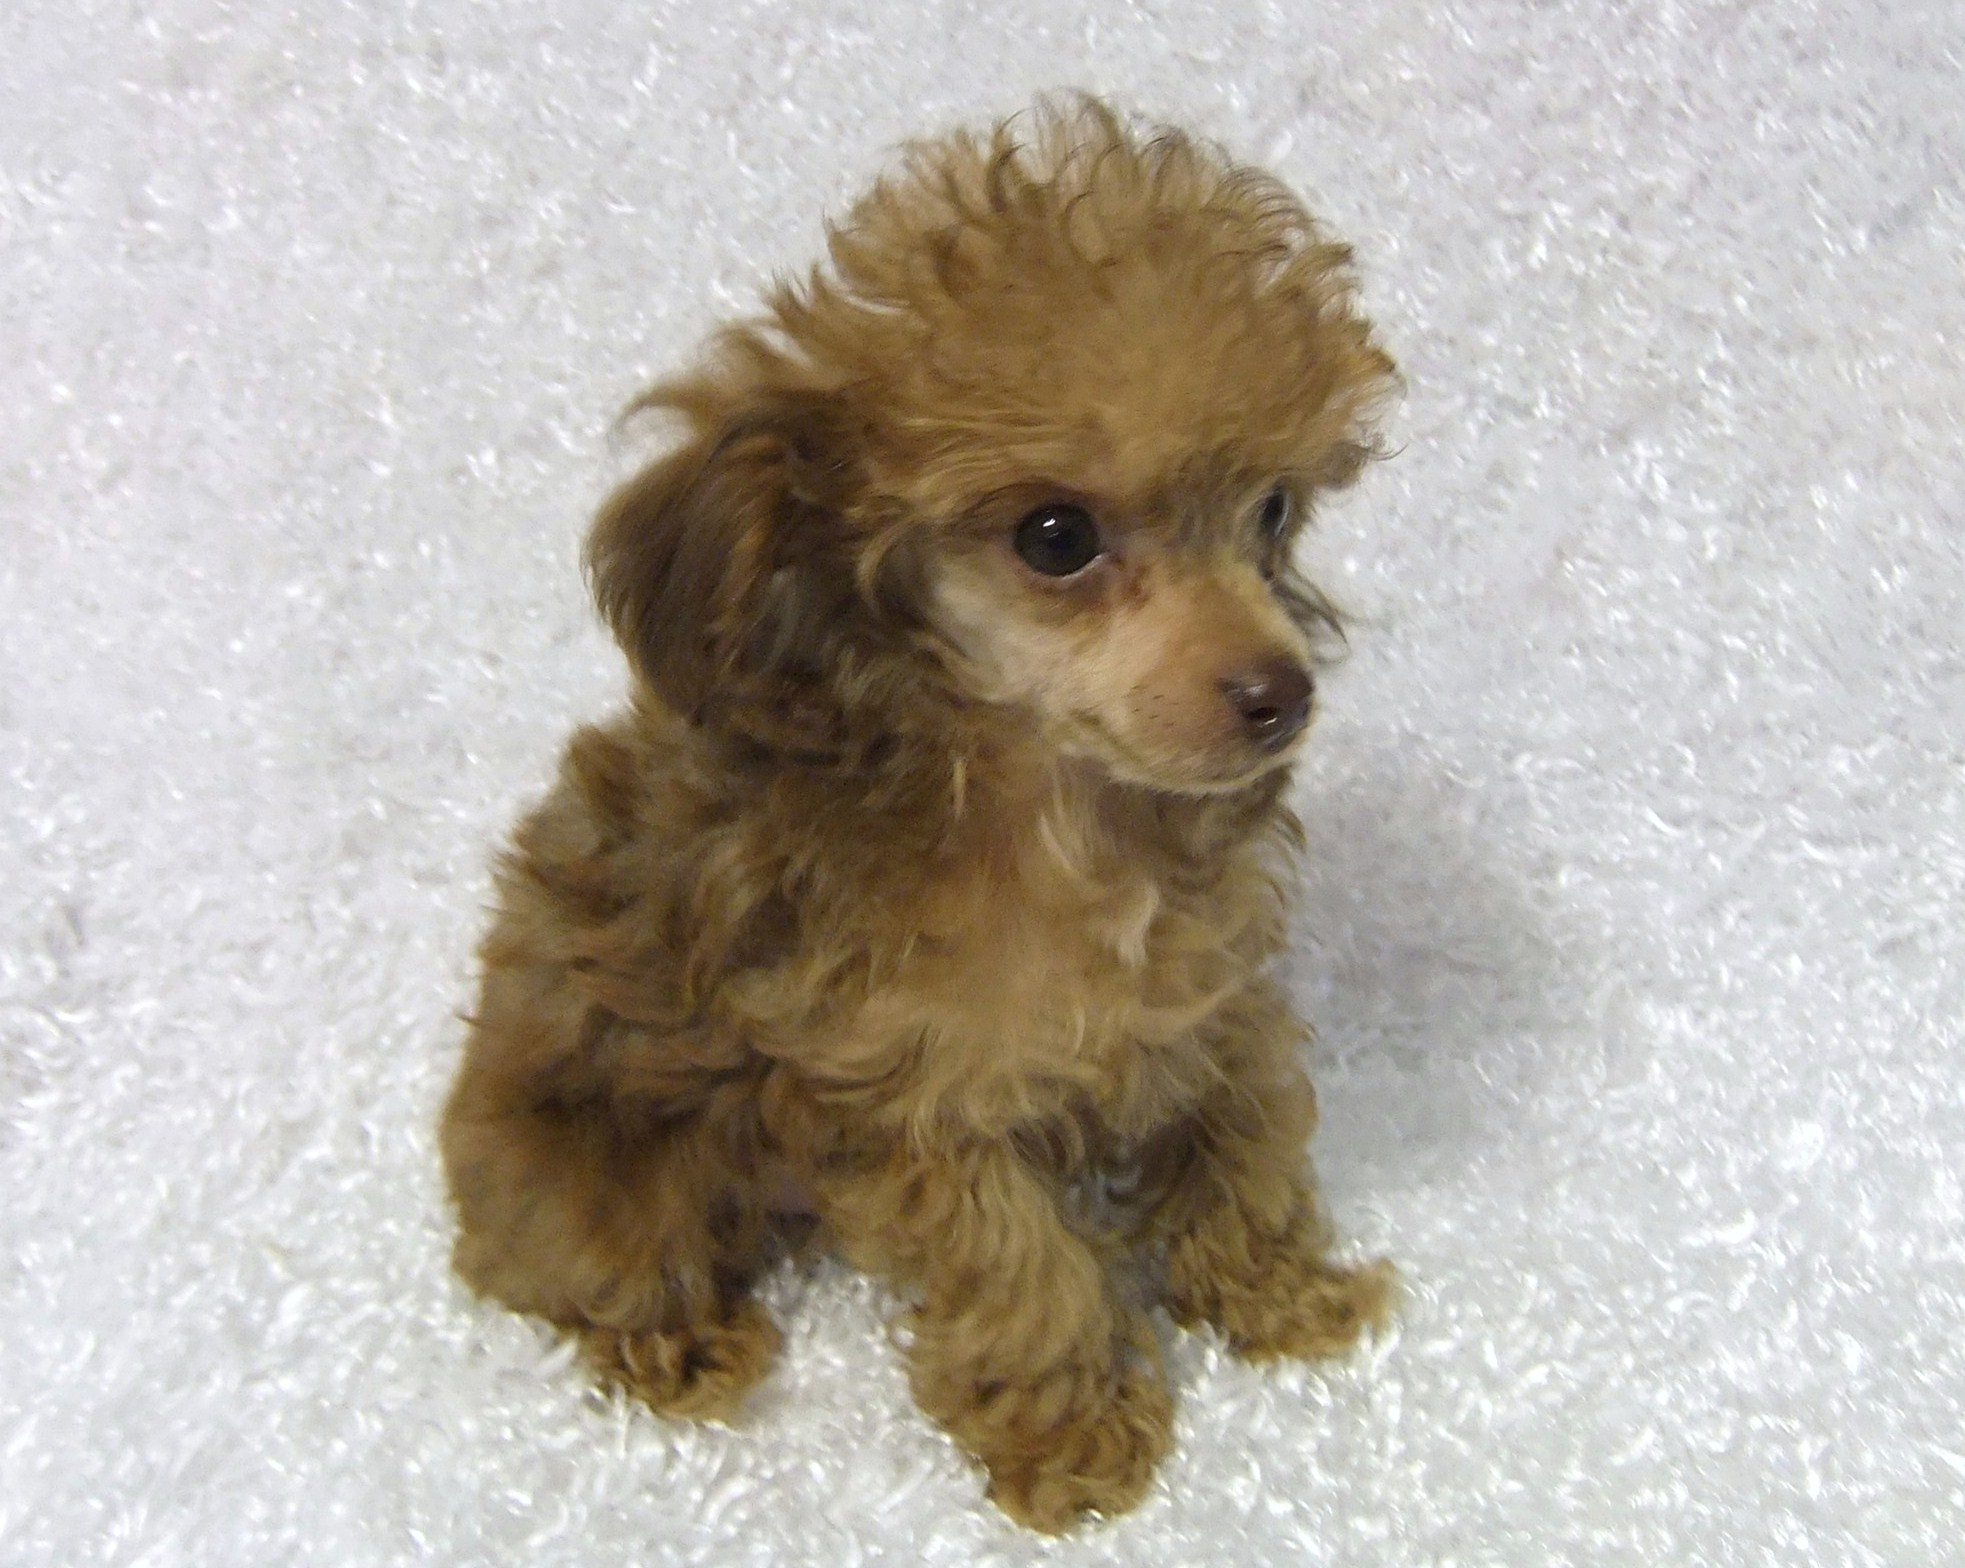 Teacup Poodle Puppies For Sale Breeder Ca PictureTeacup Poodle Apricot